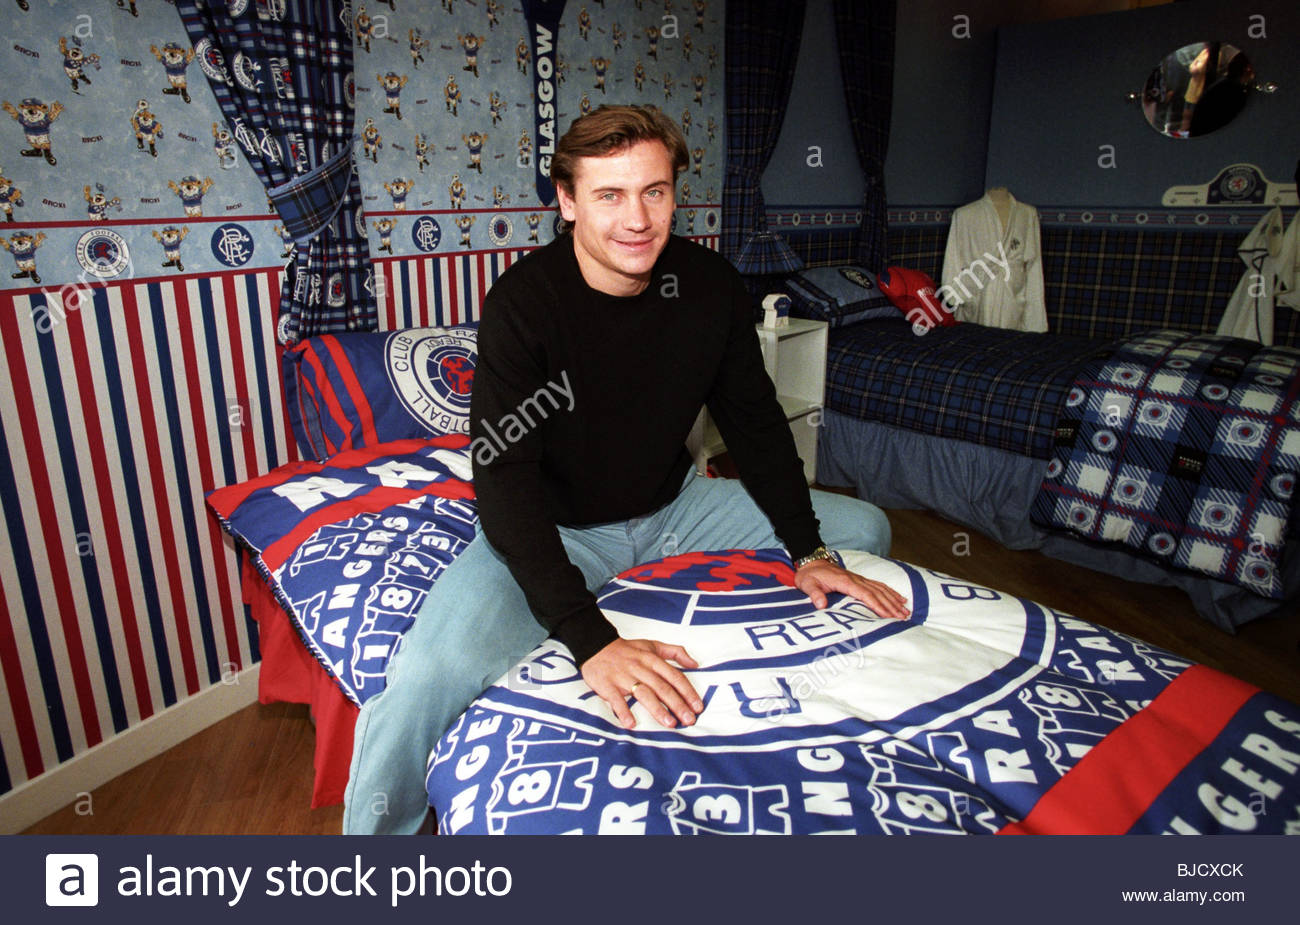 15/07/98 IBROX - GLASGOW New Rangers signing Andrei Kanchelskis in the club's Ibrox superstore. - Stock Image